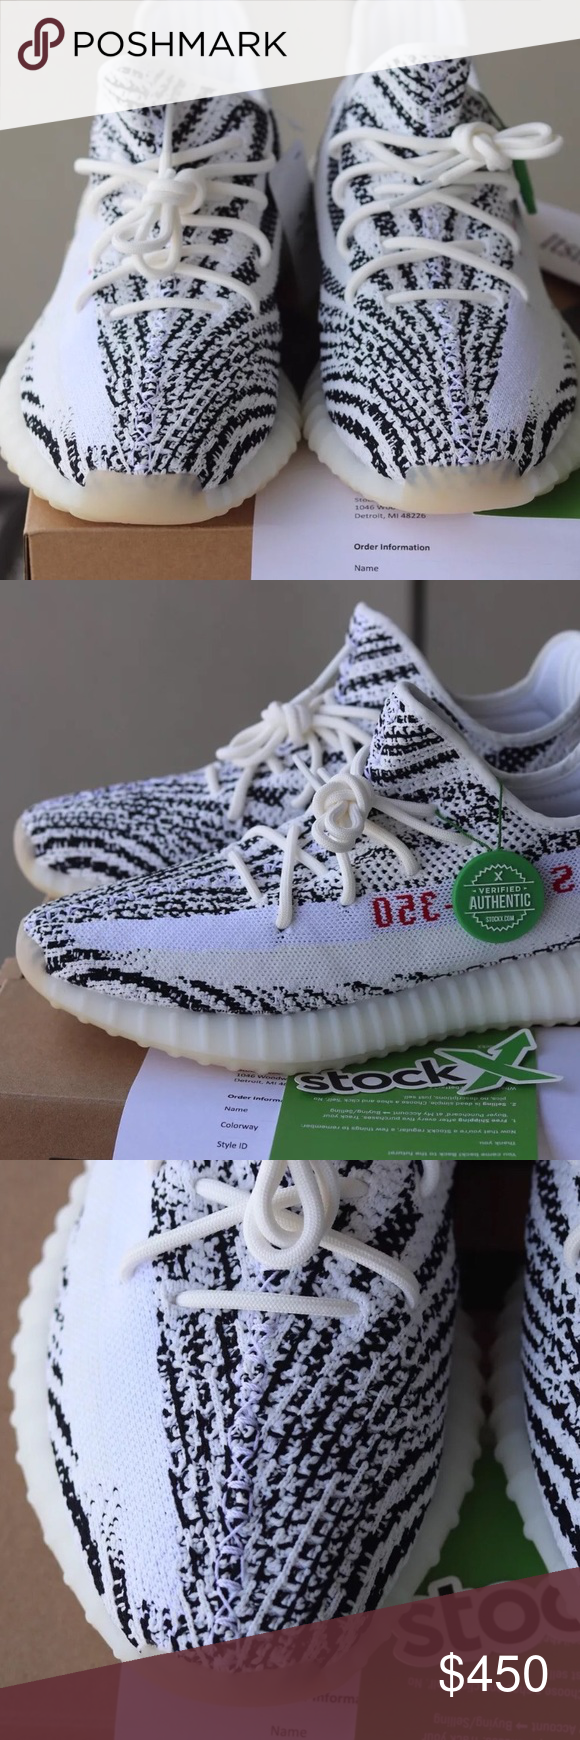 e9c0bfc21 Adidas Yeezy Boost 350 V2 Zebra 100% Authentic 🔺 We are a very negotiable  service